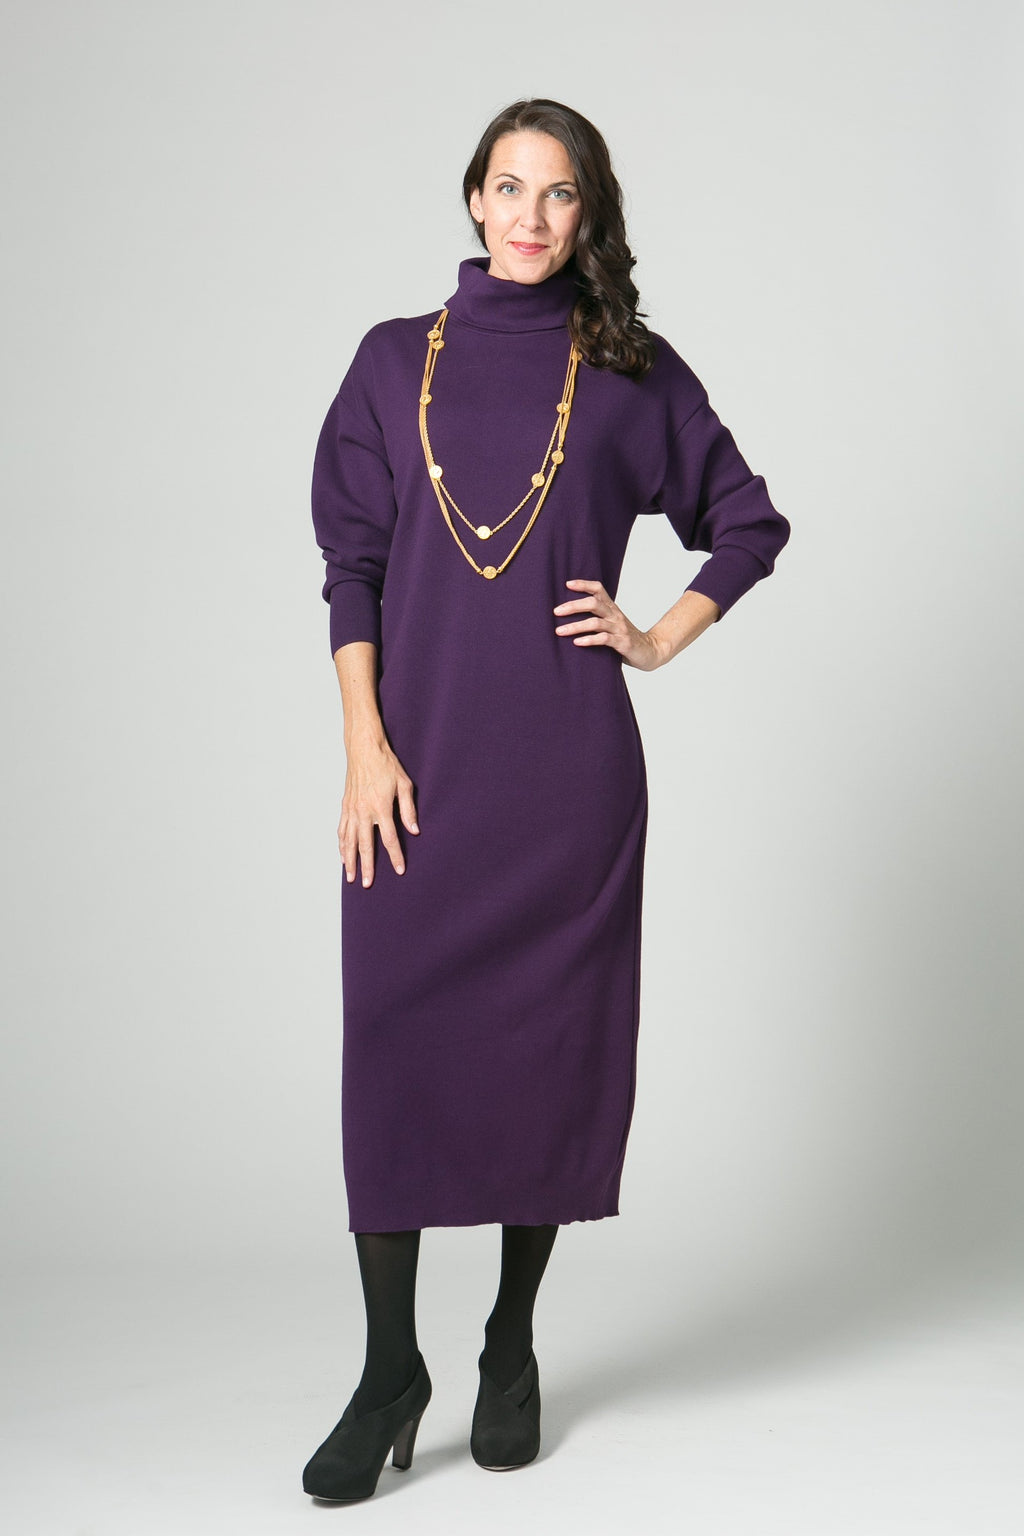 Long Sleeve Classic Turtleneck Dress - Ballin's LTD  &  New Orleans Knitwear